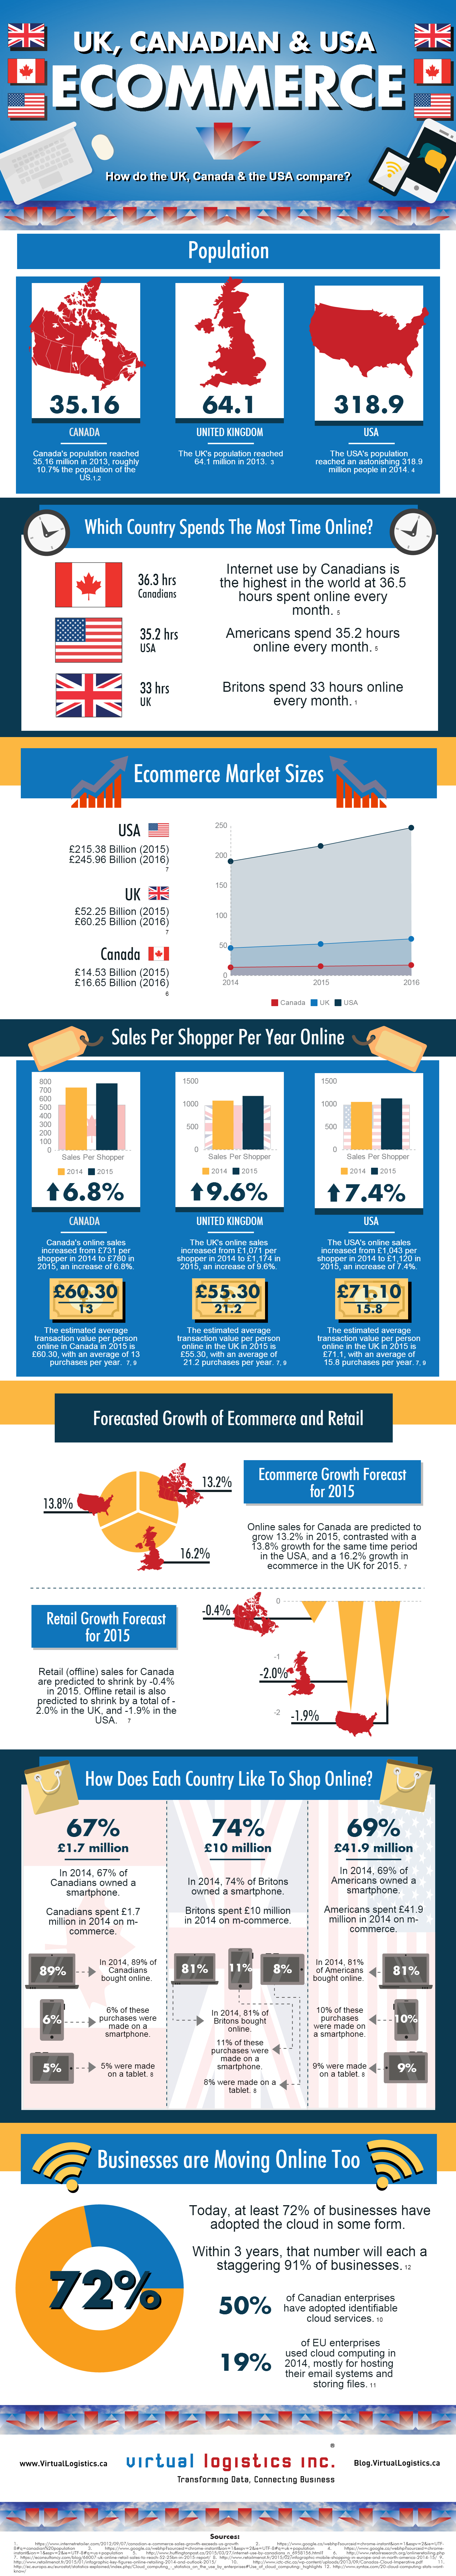 #UK, #Canadian & #USA #Ecommerce Differences #Infographic. Download the PDF version here: http://content.virtuallogistics.ca/download-the-pdf-infographic-uk-canadian-and-usa-ecommerce/